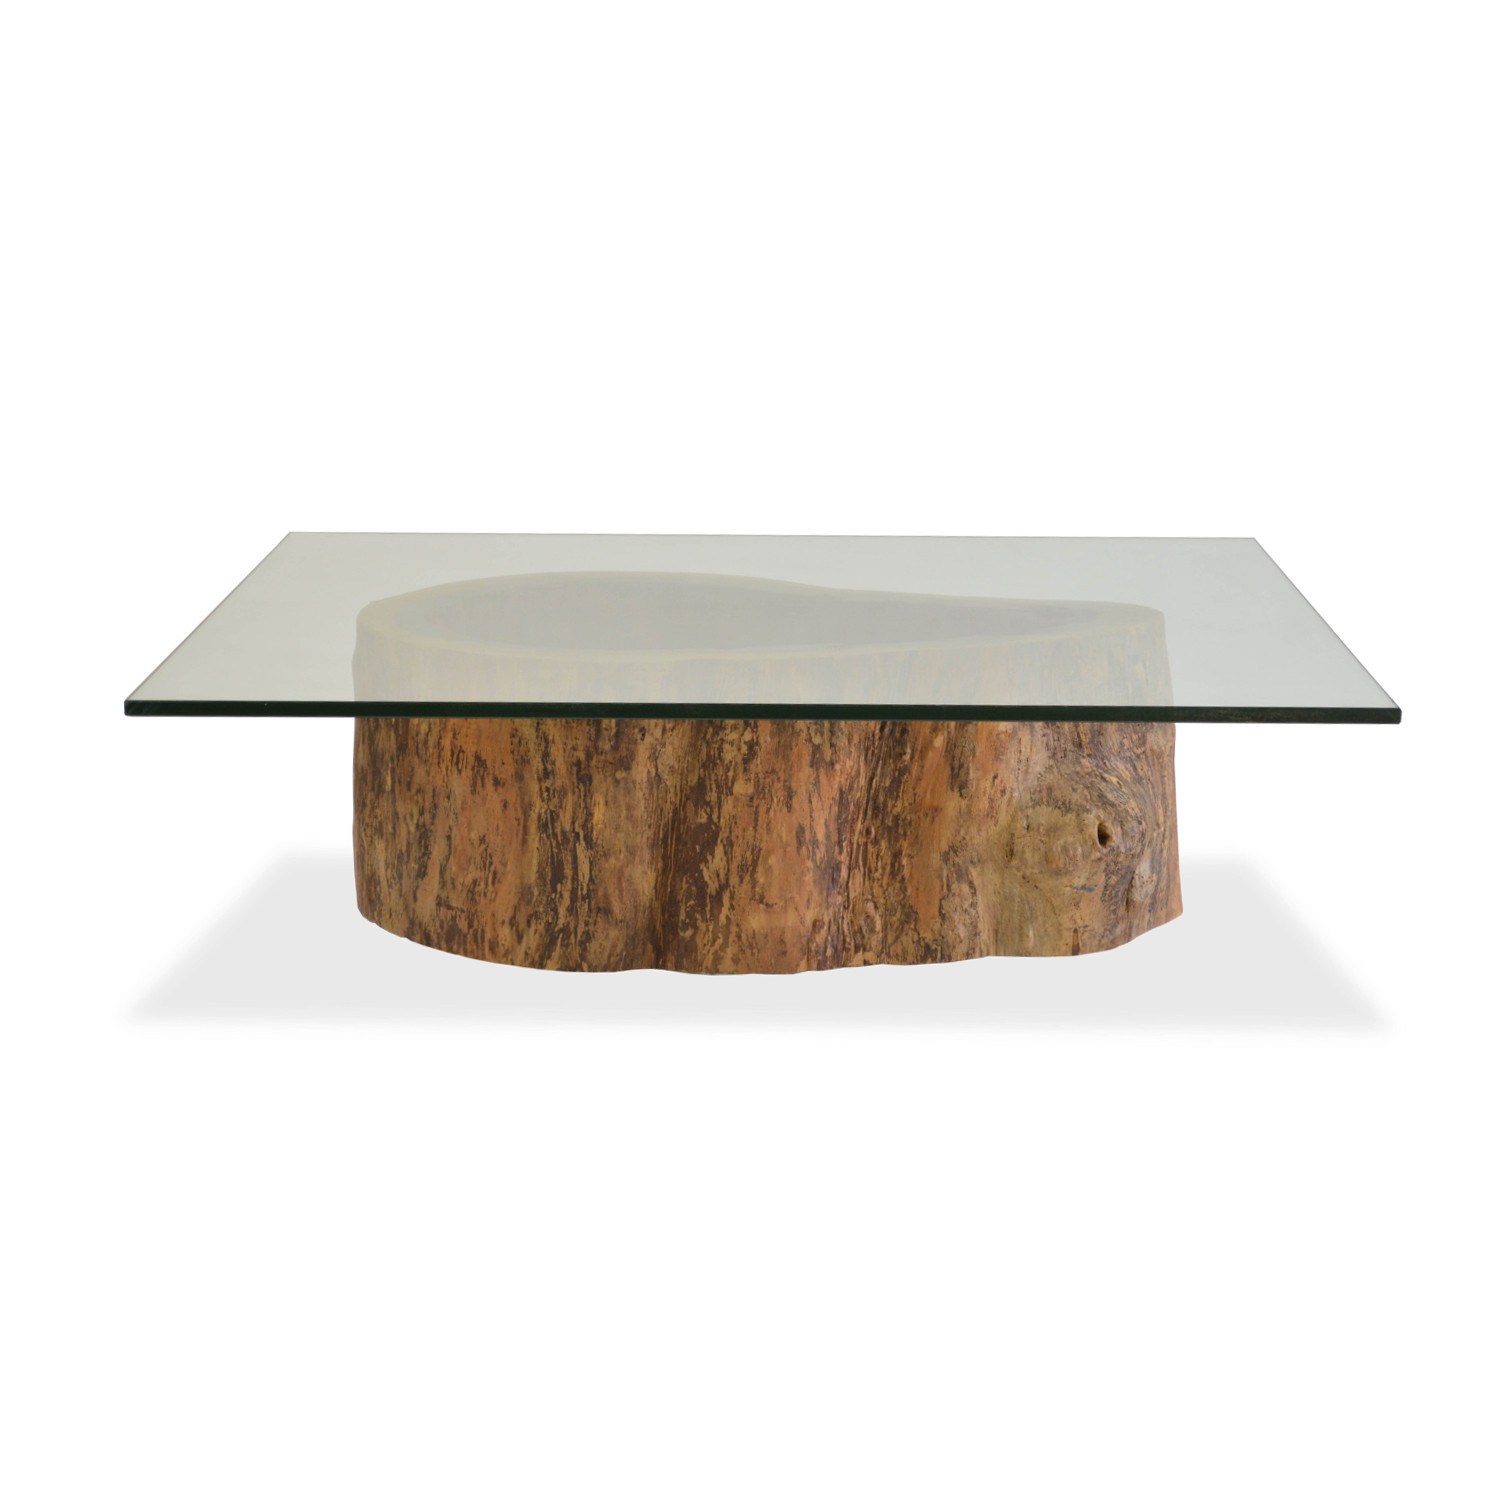 Salvage Hollow Trunk Coffee Table // Square Glass Top